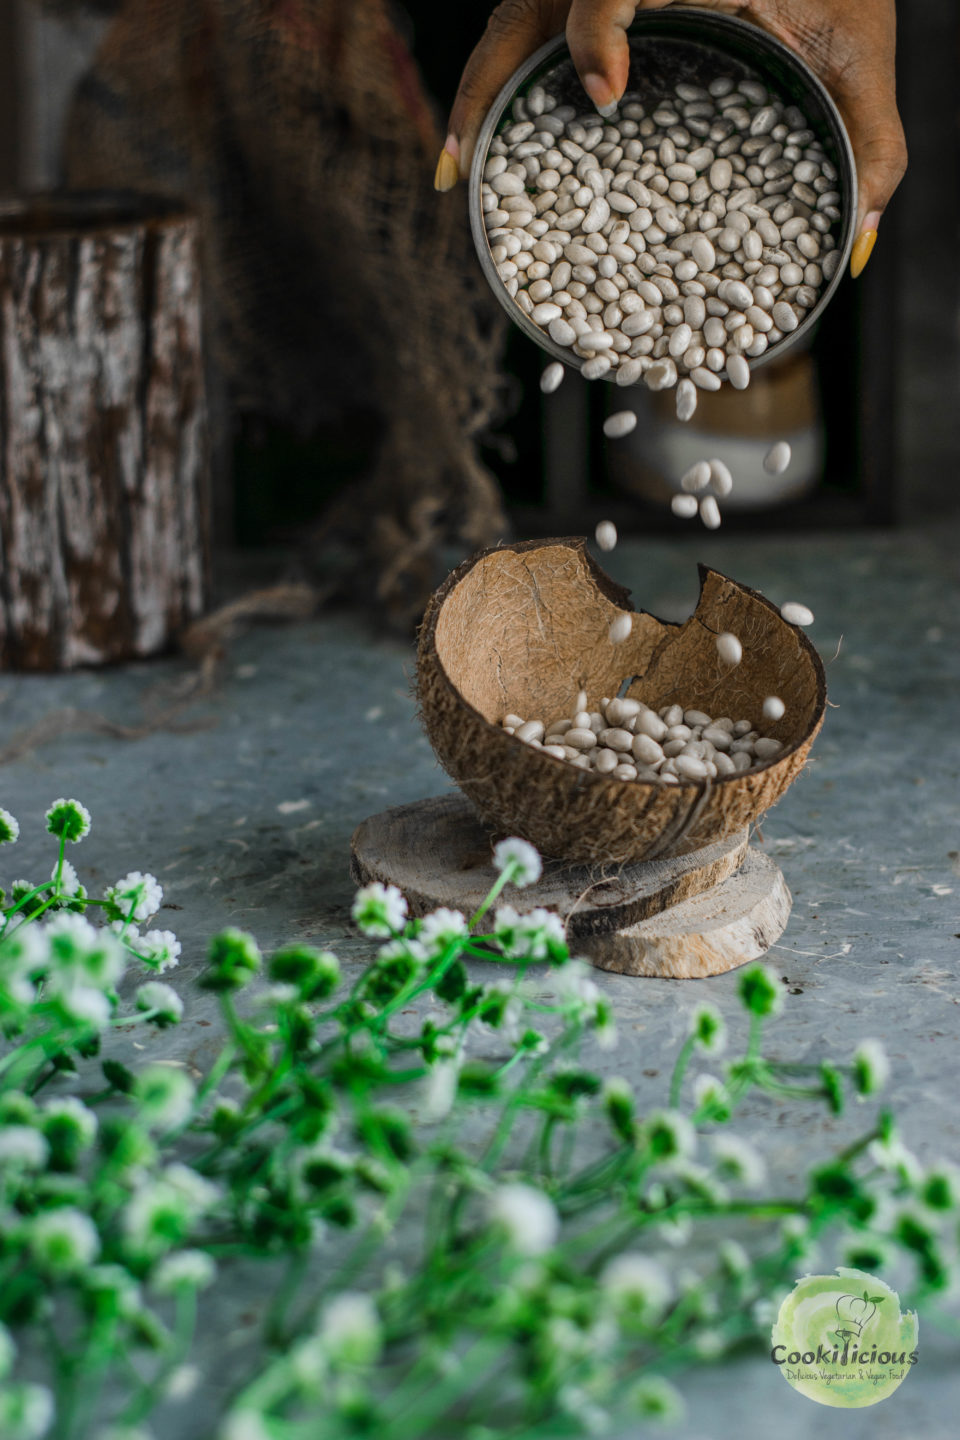 navy beans being poured into a coconut shell